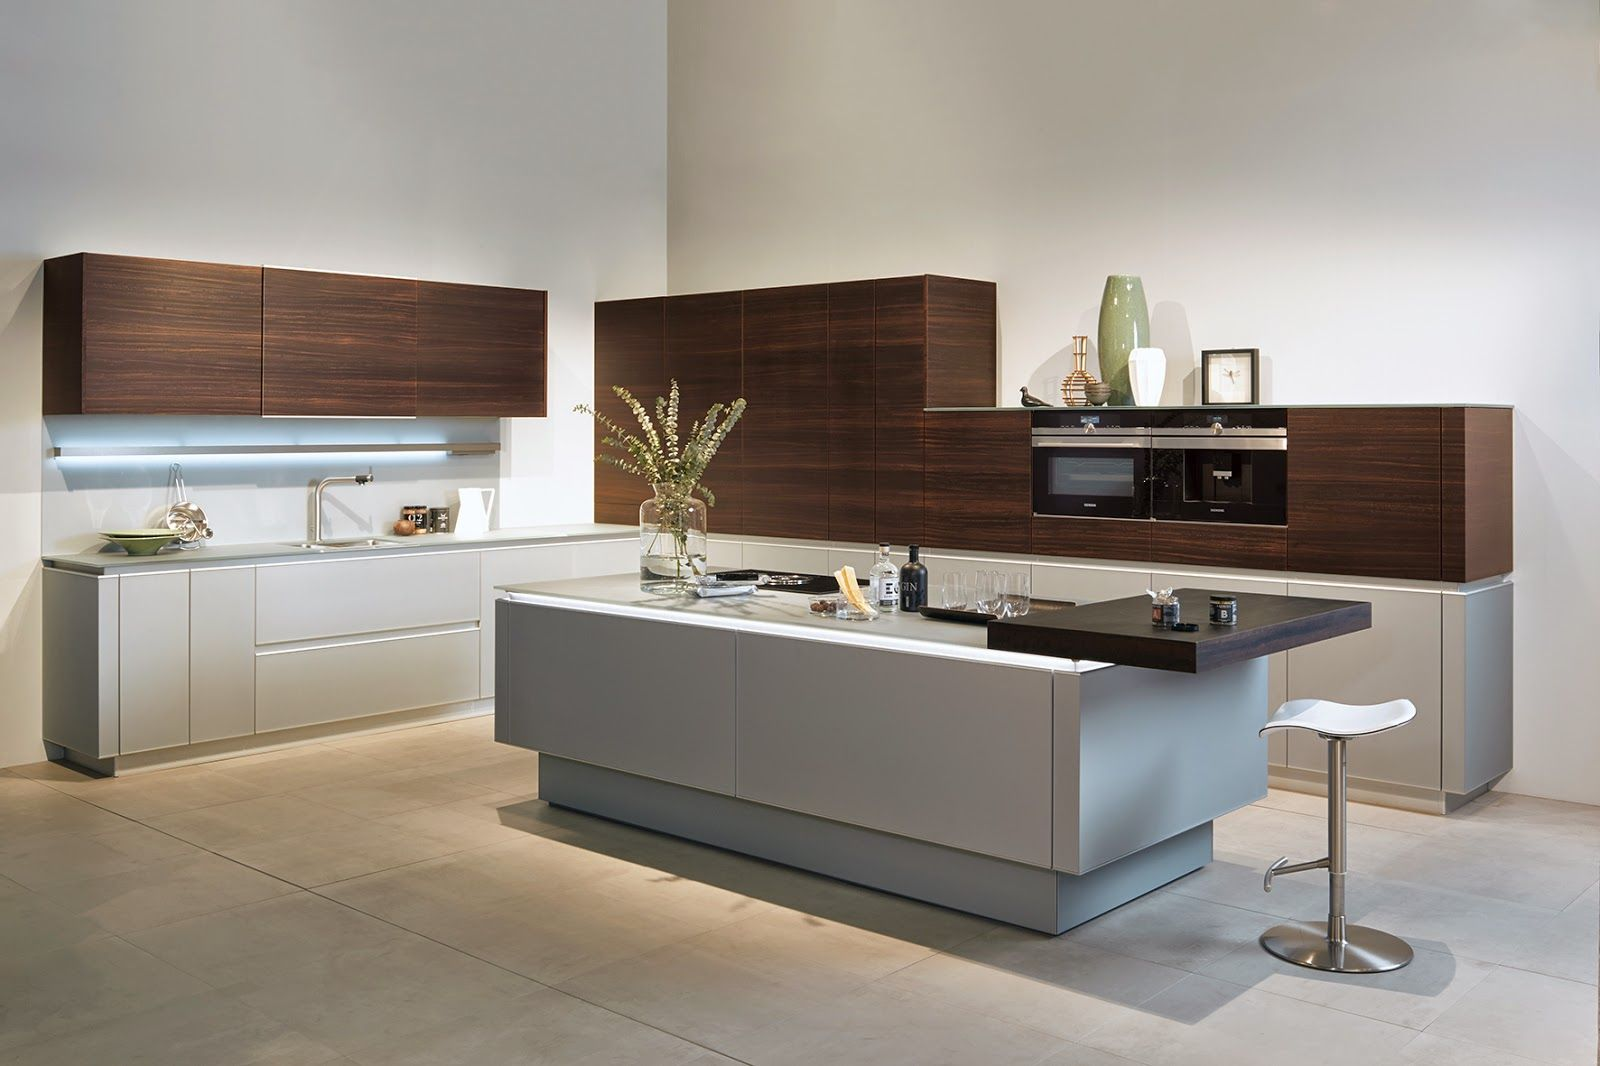 german kitchen cabinets Luxury cabinet options for your kitchen design us for German kitchen suppliers zeyko units call